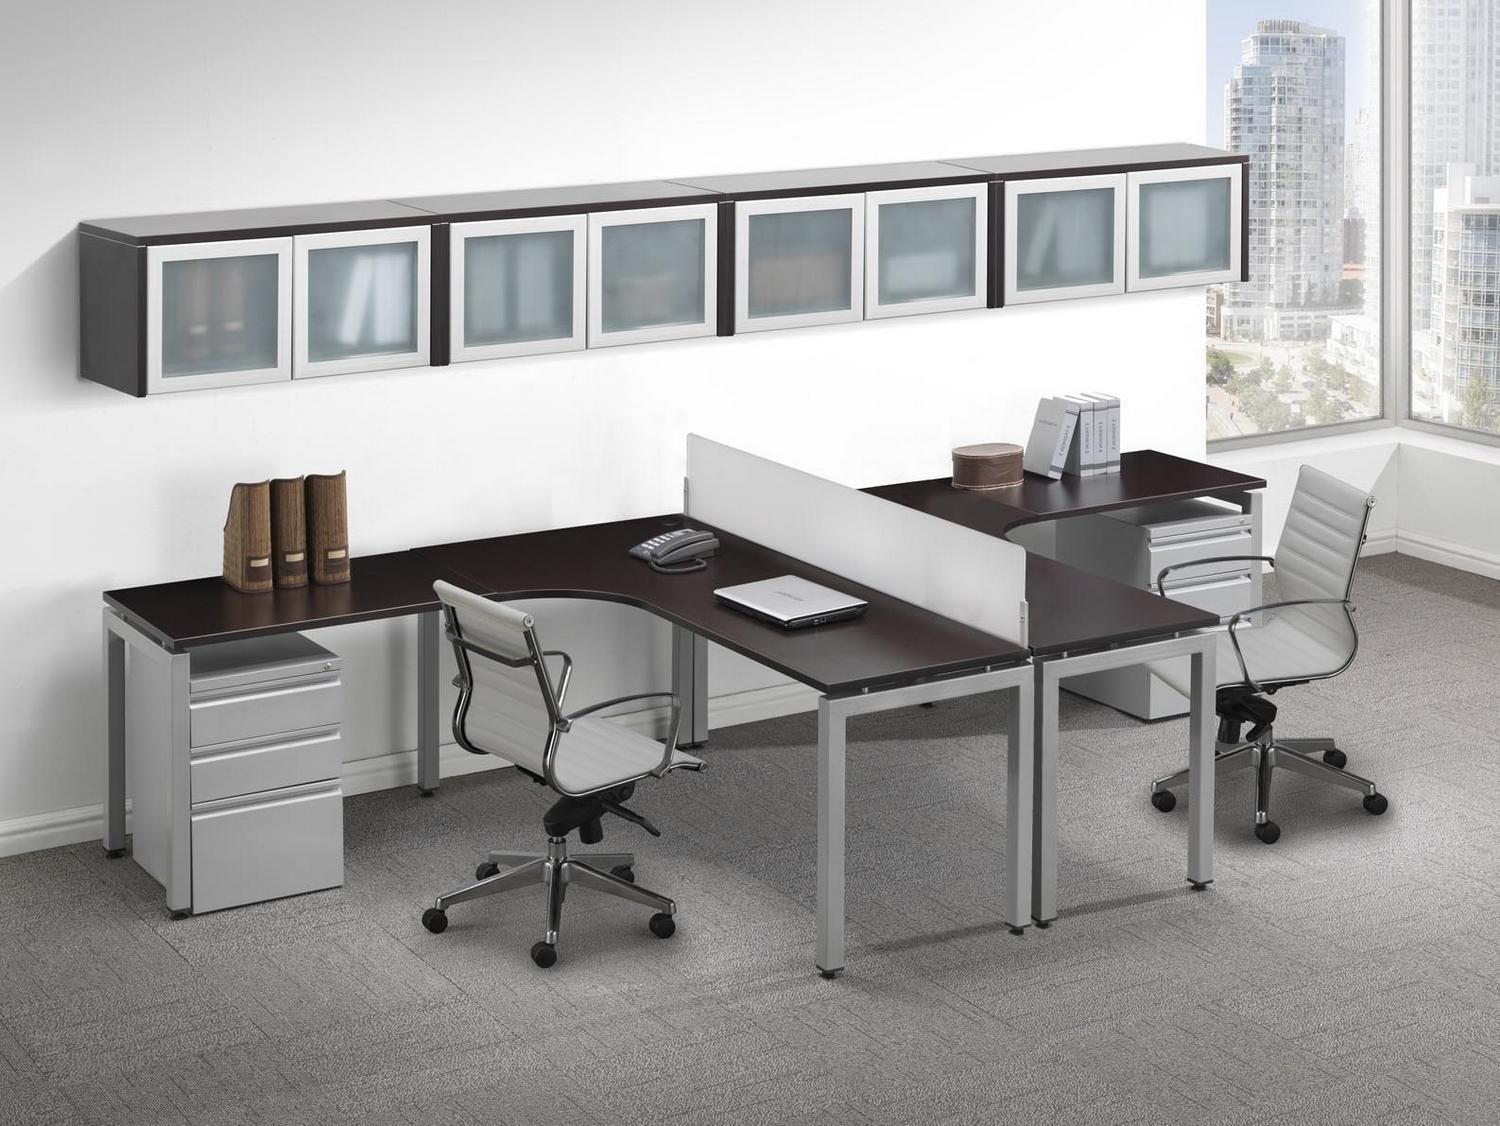 These T Shaped Desks Are Perfect For Home Offices Or Businesses Https Goo Gl Sxfwuh